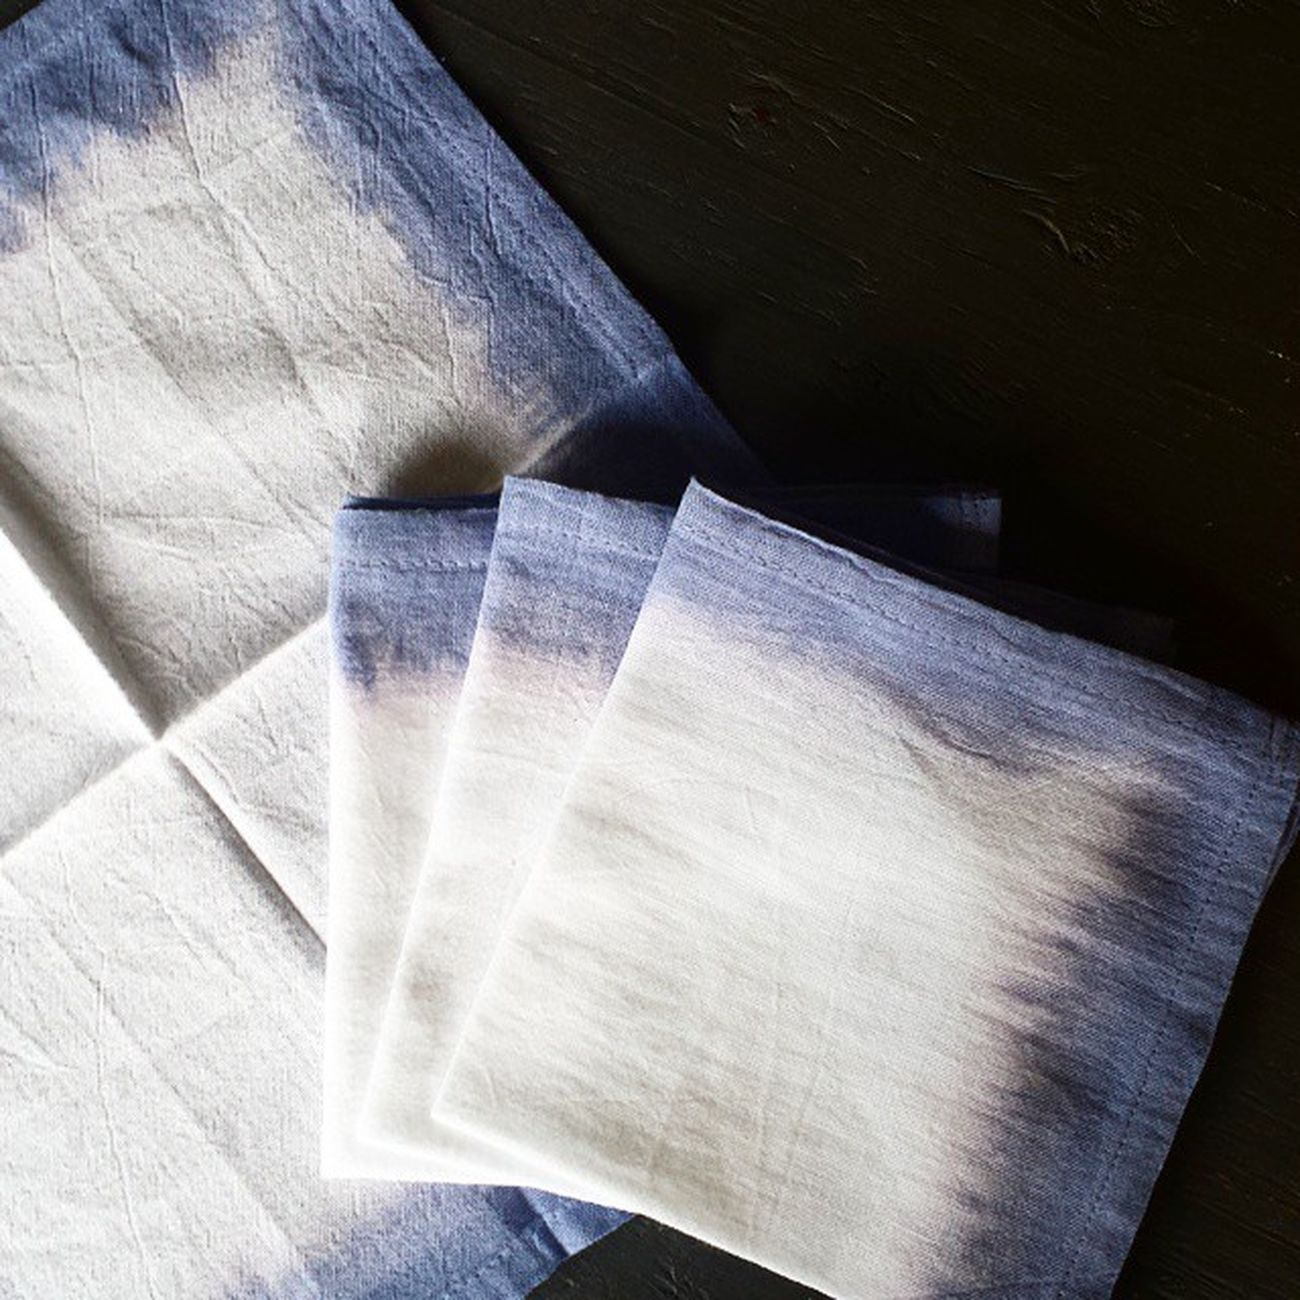 New patterns coming...living on the edge here☆☆☆ Patioseason JacandJil Handmade Textiles Ombre Napkins Linens Pillows Cushions  Home Decor Vacationchic Colour Indigo Shibori DipDye Gardenpartytime Outdoor Dining Table Events Party Wedding Styling Bridal @Etsy MothersDay